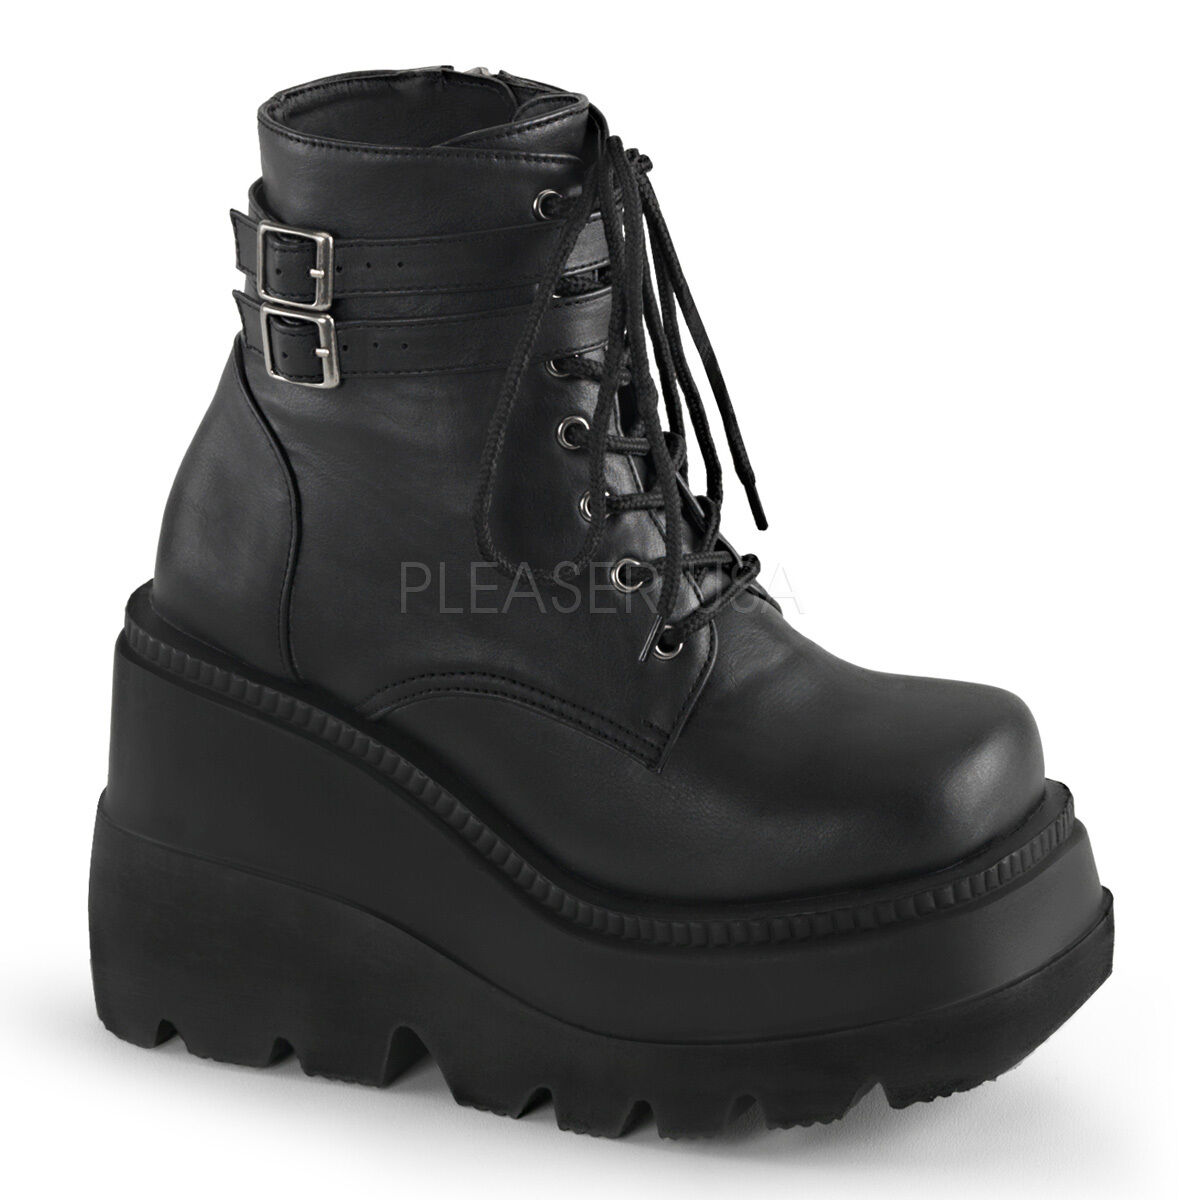 "Demonia 4.5"" Wedge Platform Lace Up Gothic Black Ankle Boots"